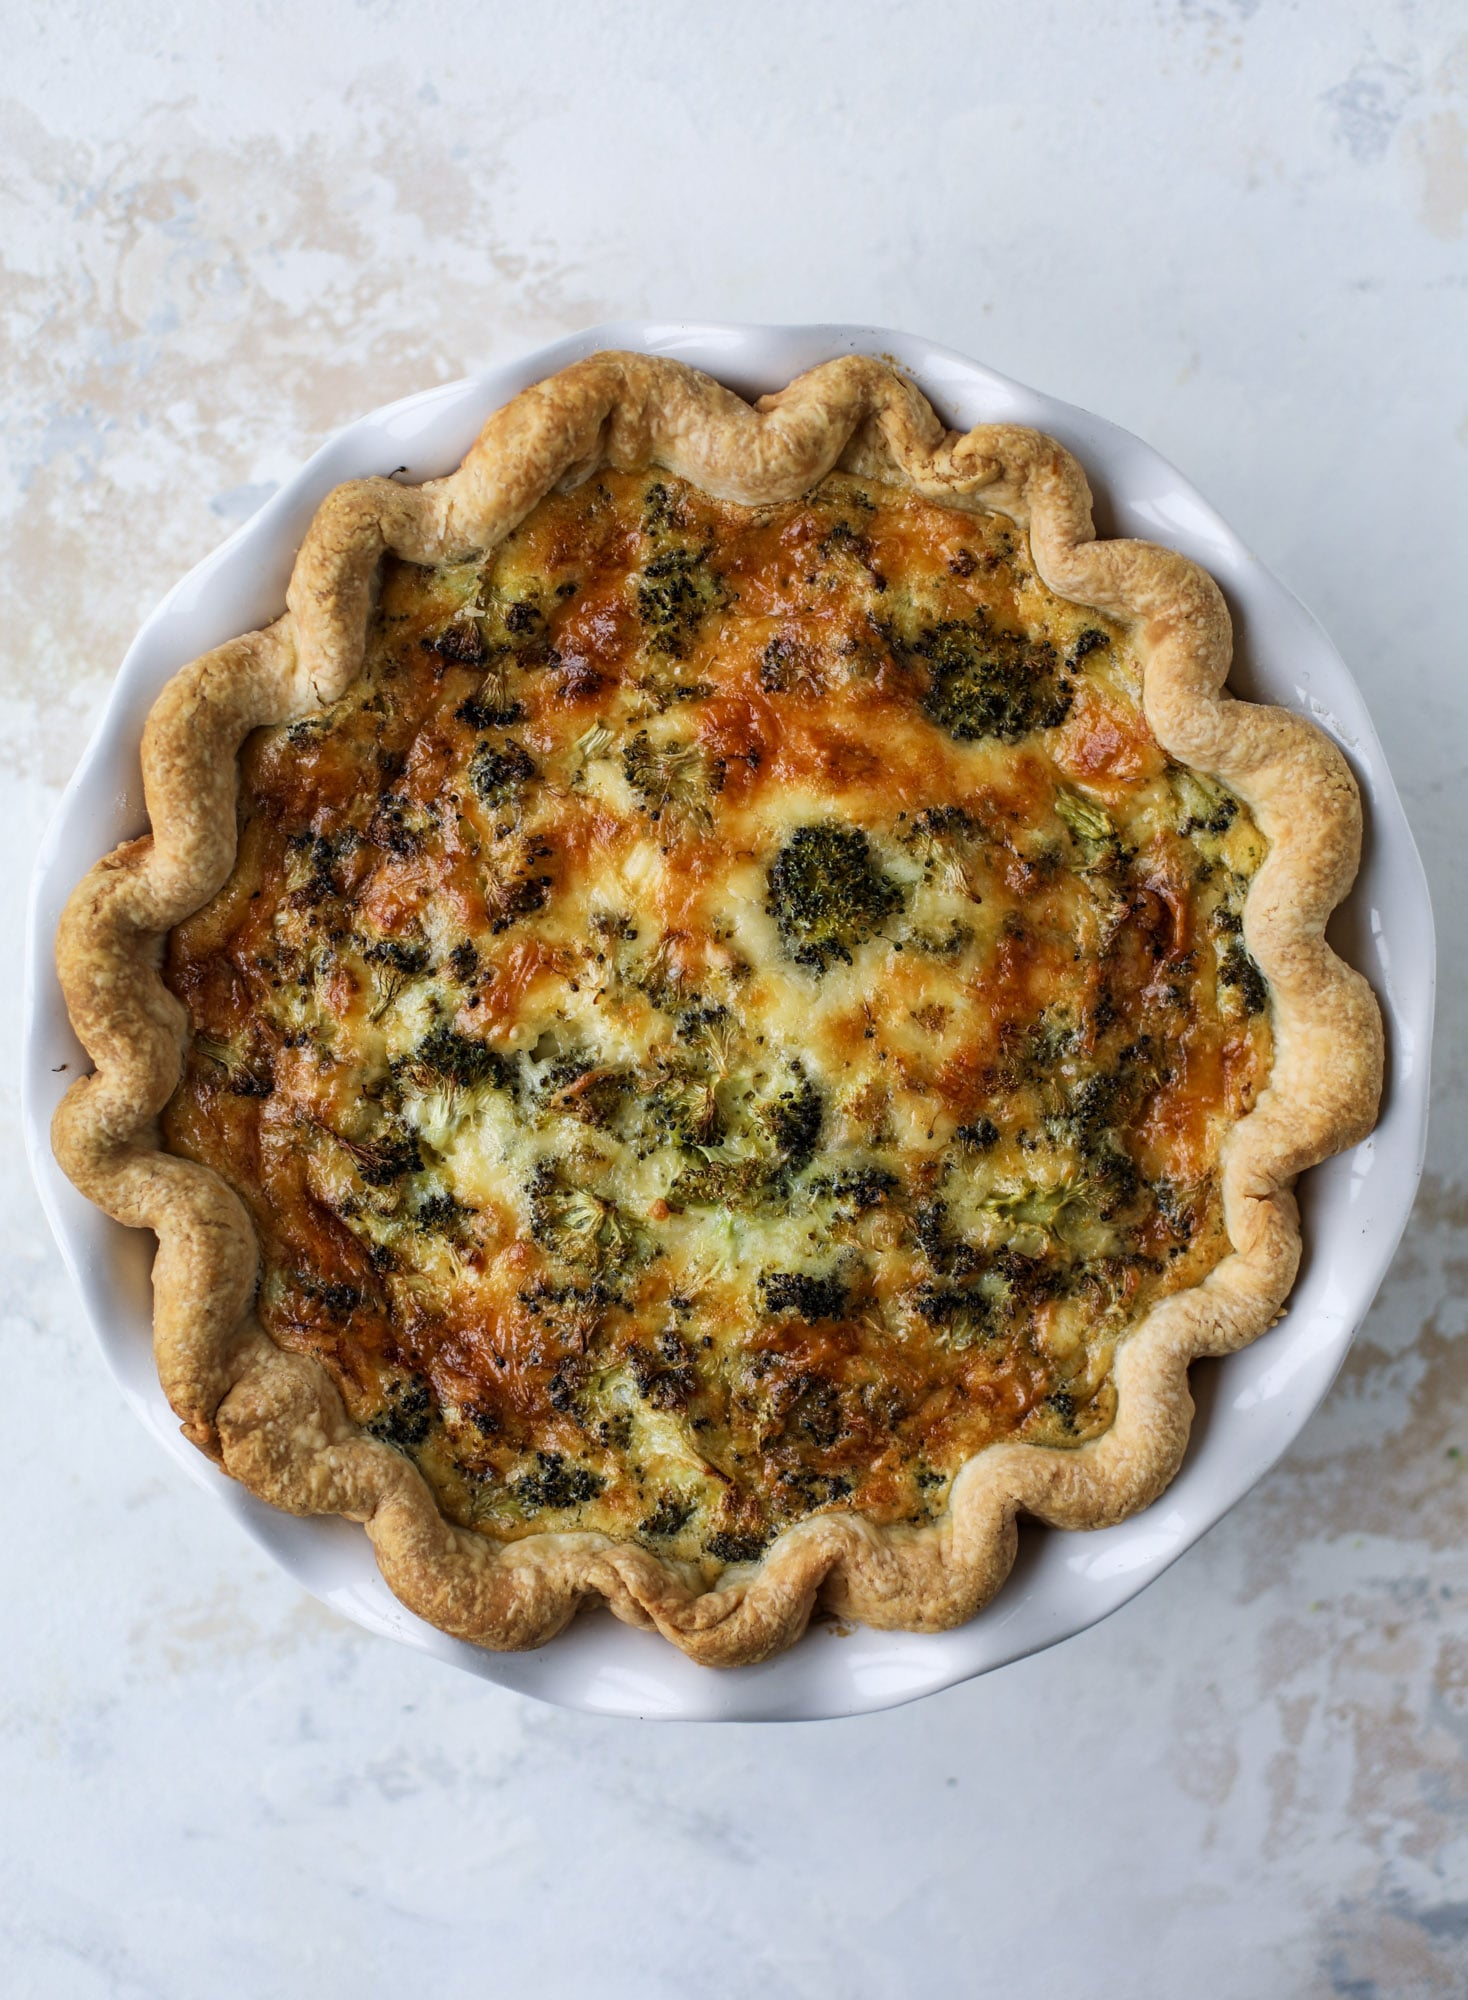 This broccoli cheese quiche is absolutely perfect for brunch, lunch or even dinner! It's delicious served warm or cold, perfect paired with a greens salad and is a recipe that can be made ahead of time! I howsweeteats.com #broccolicheese #quiche